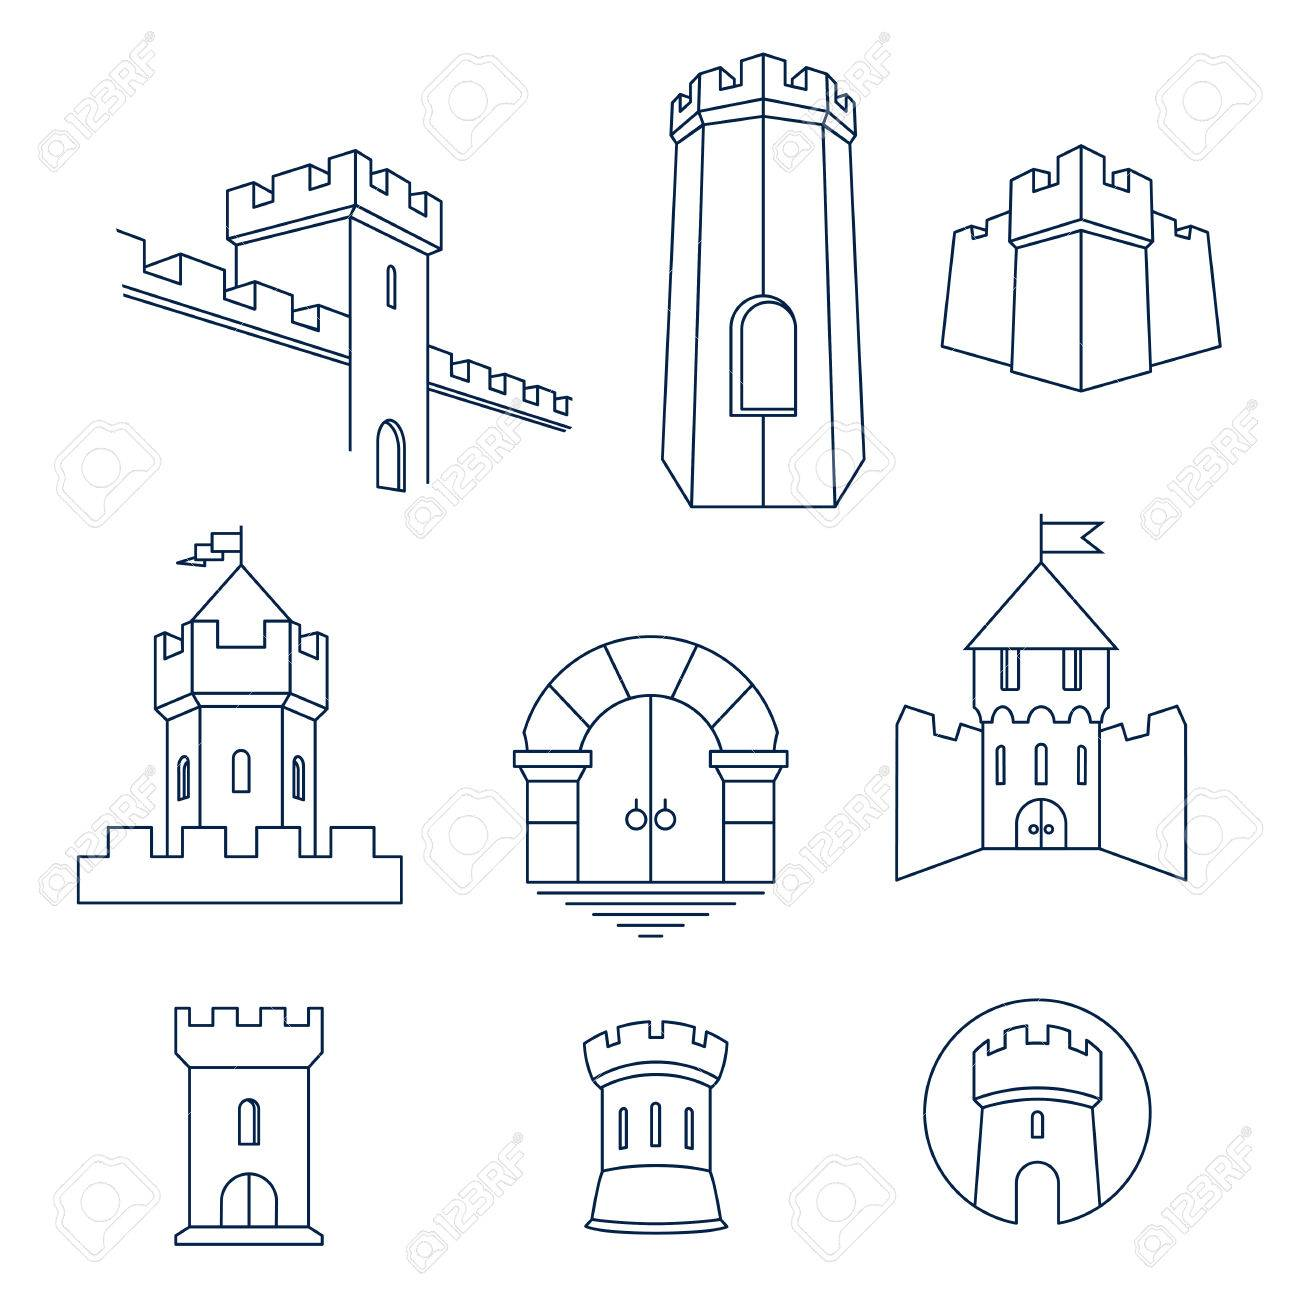 69148682 castle tower turret kingdom fortress and castle gate vector line art icon set castle tower, turret, kingdom fortress and castle gate vector